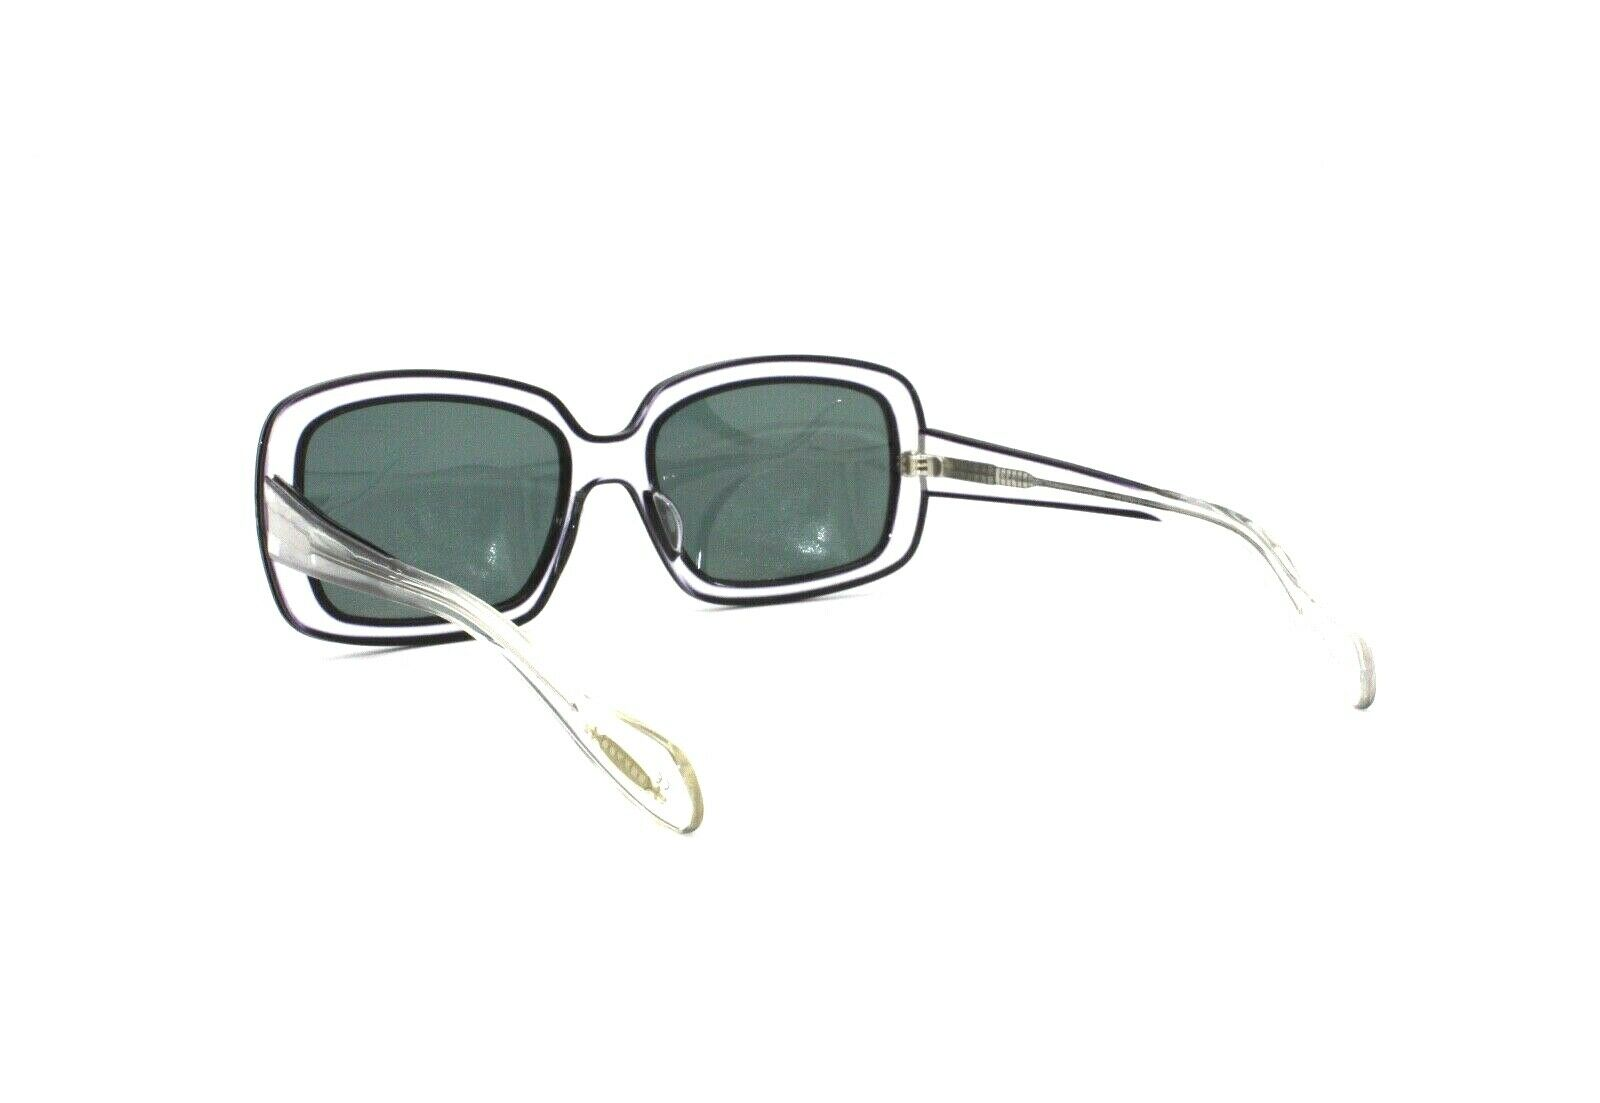 Oliver Peoples Sunglasses Twenty Years 57 18-135 Ereya Made in Japan - Mydesigneroptic